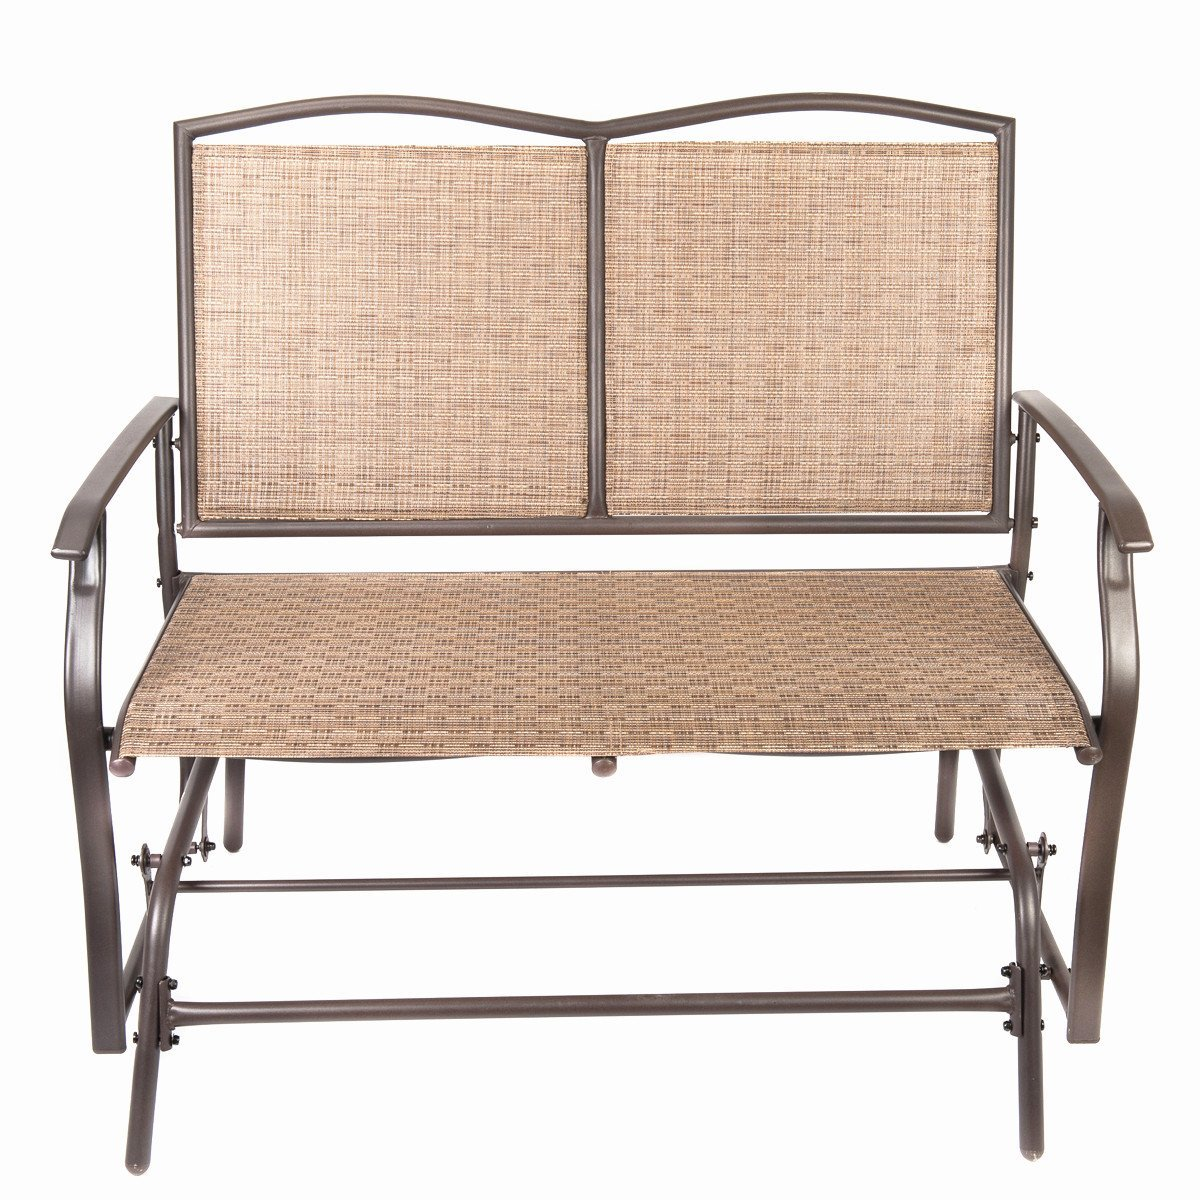 Patio Swing Glider Bench Chair Garden Glider Rocking